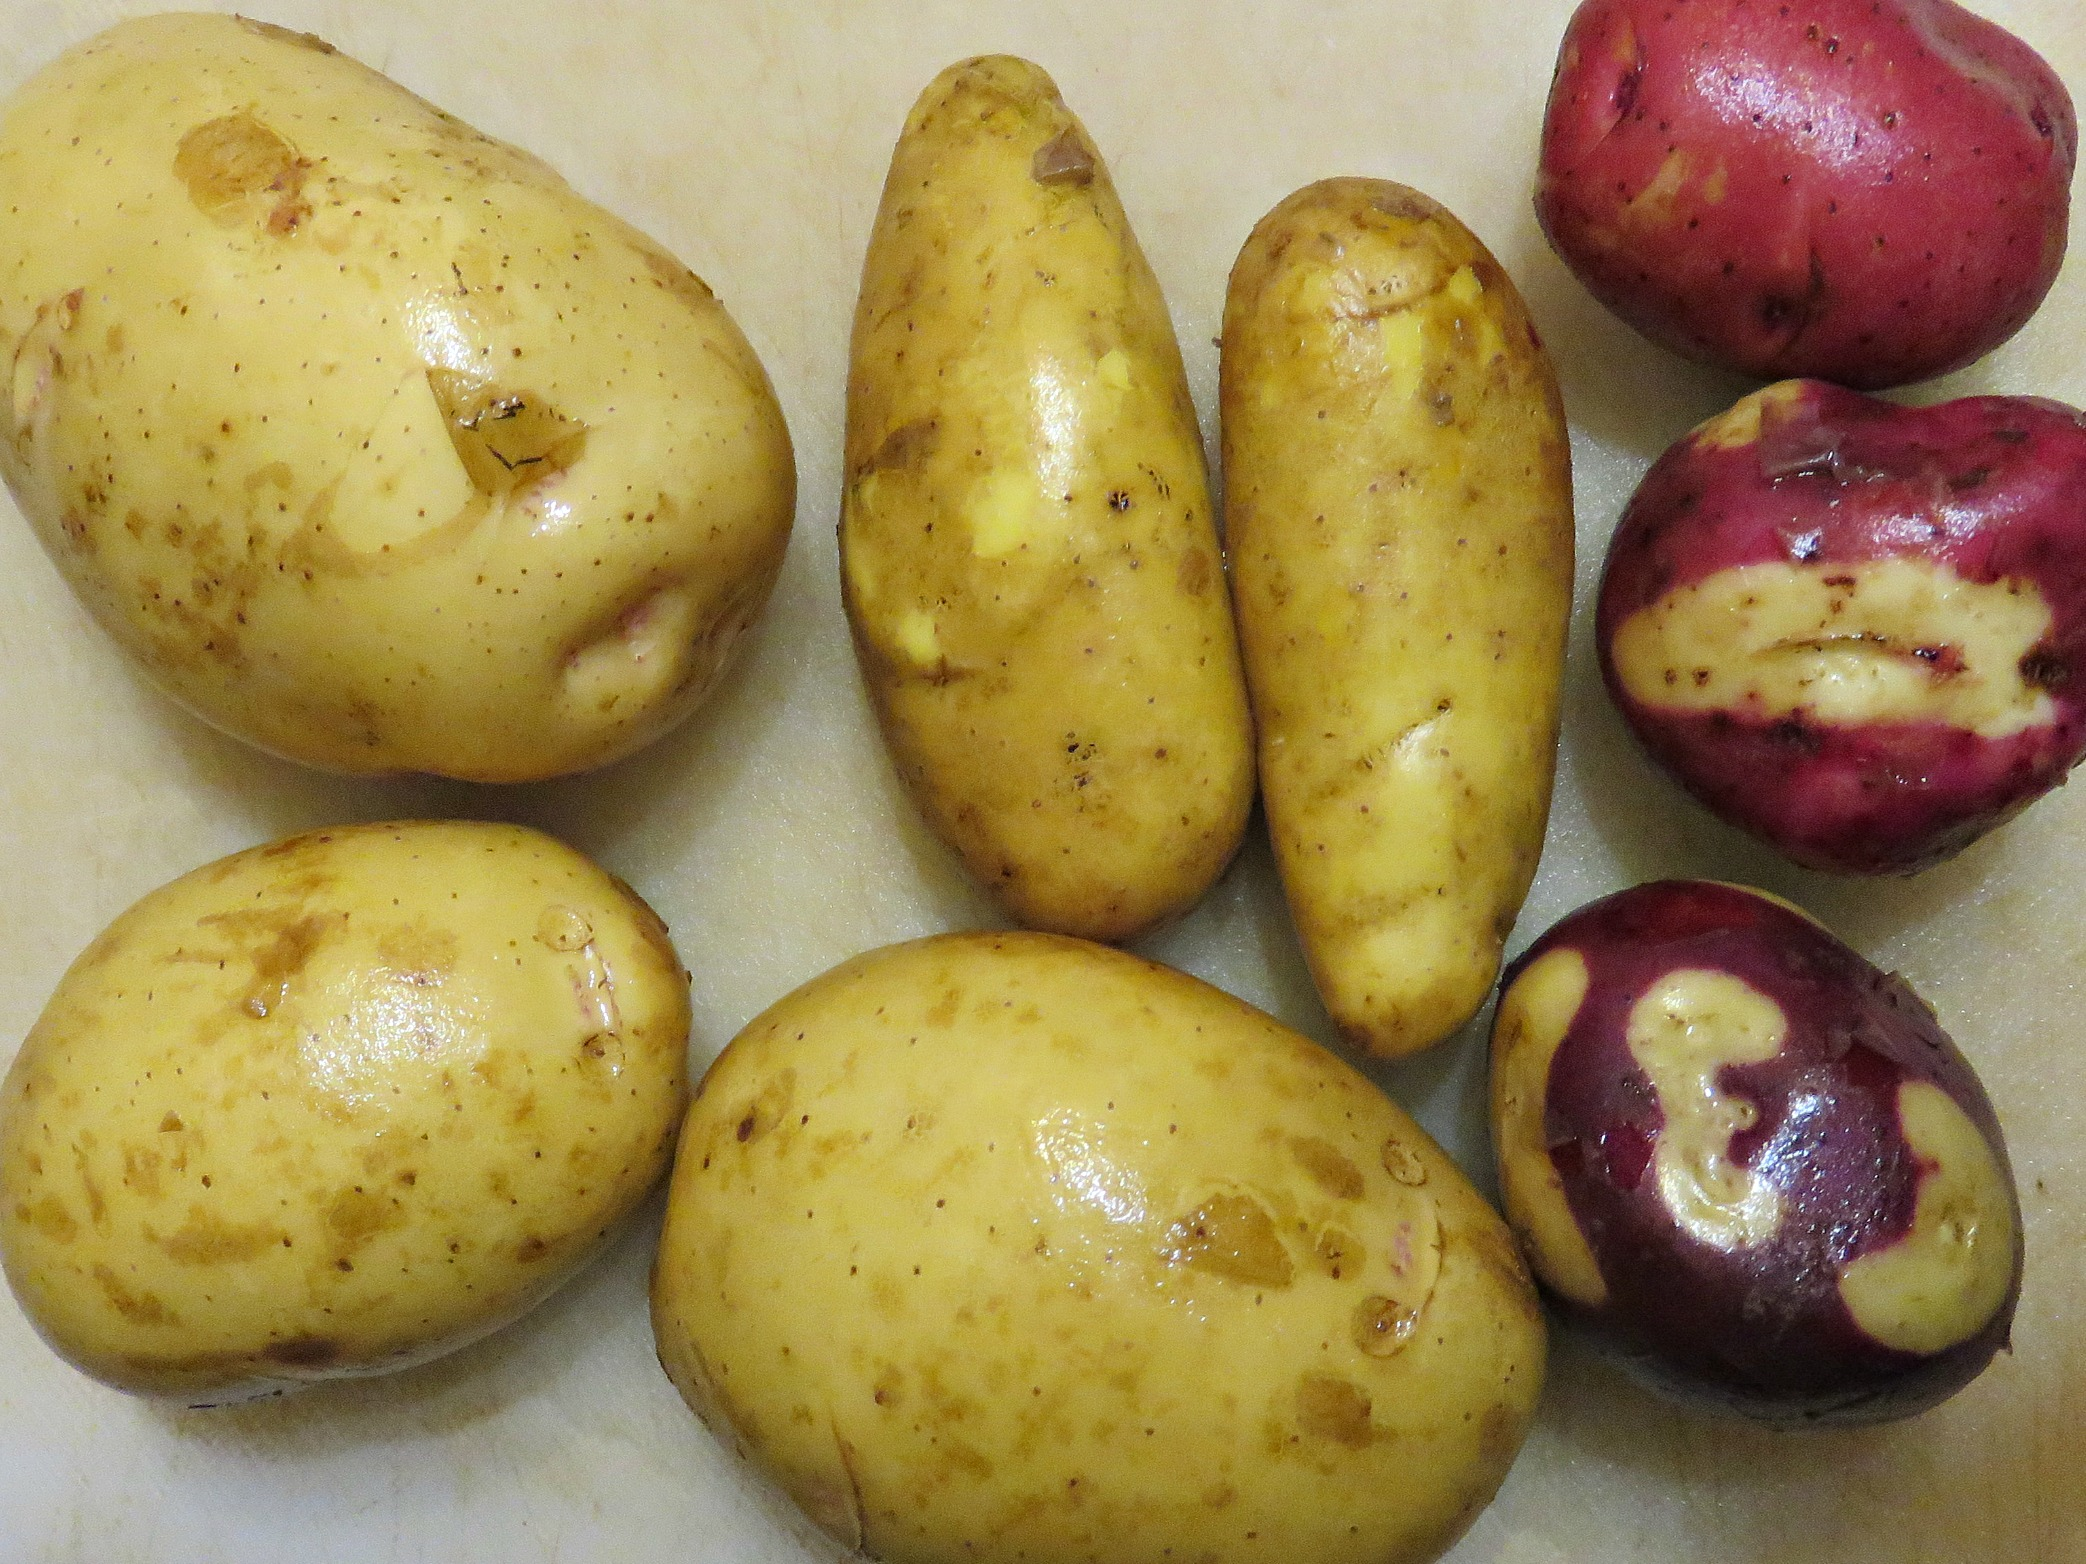 taters not cut 2015